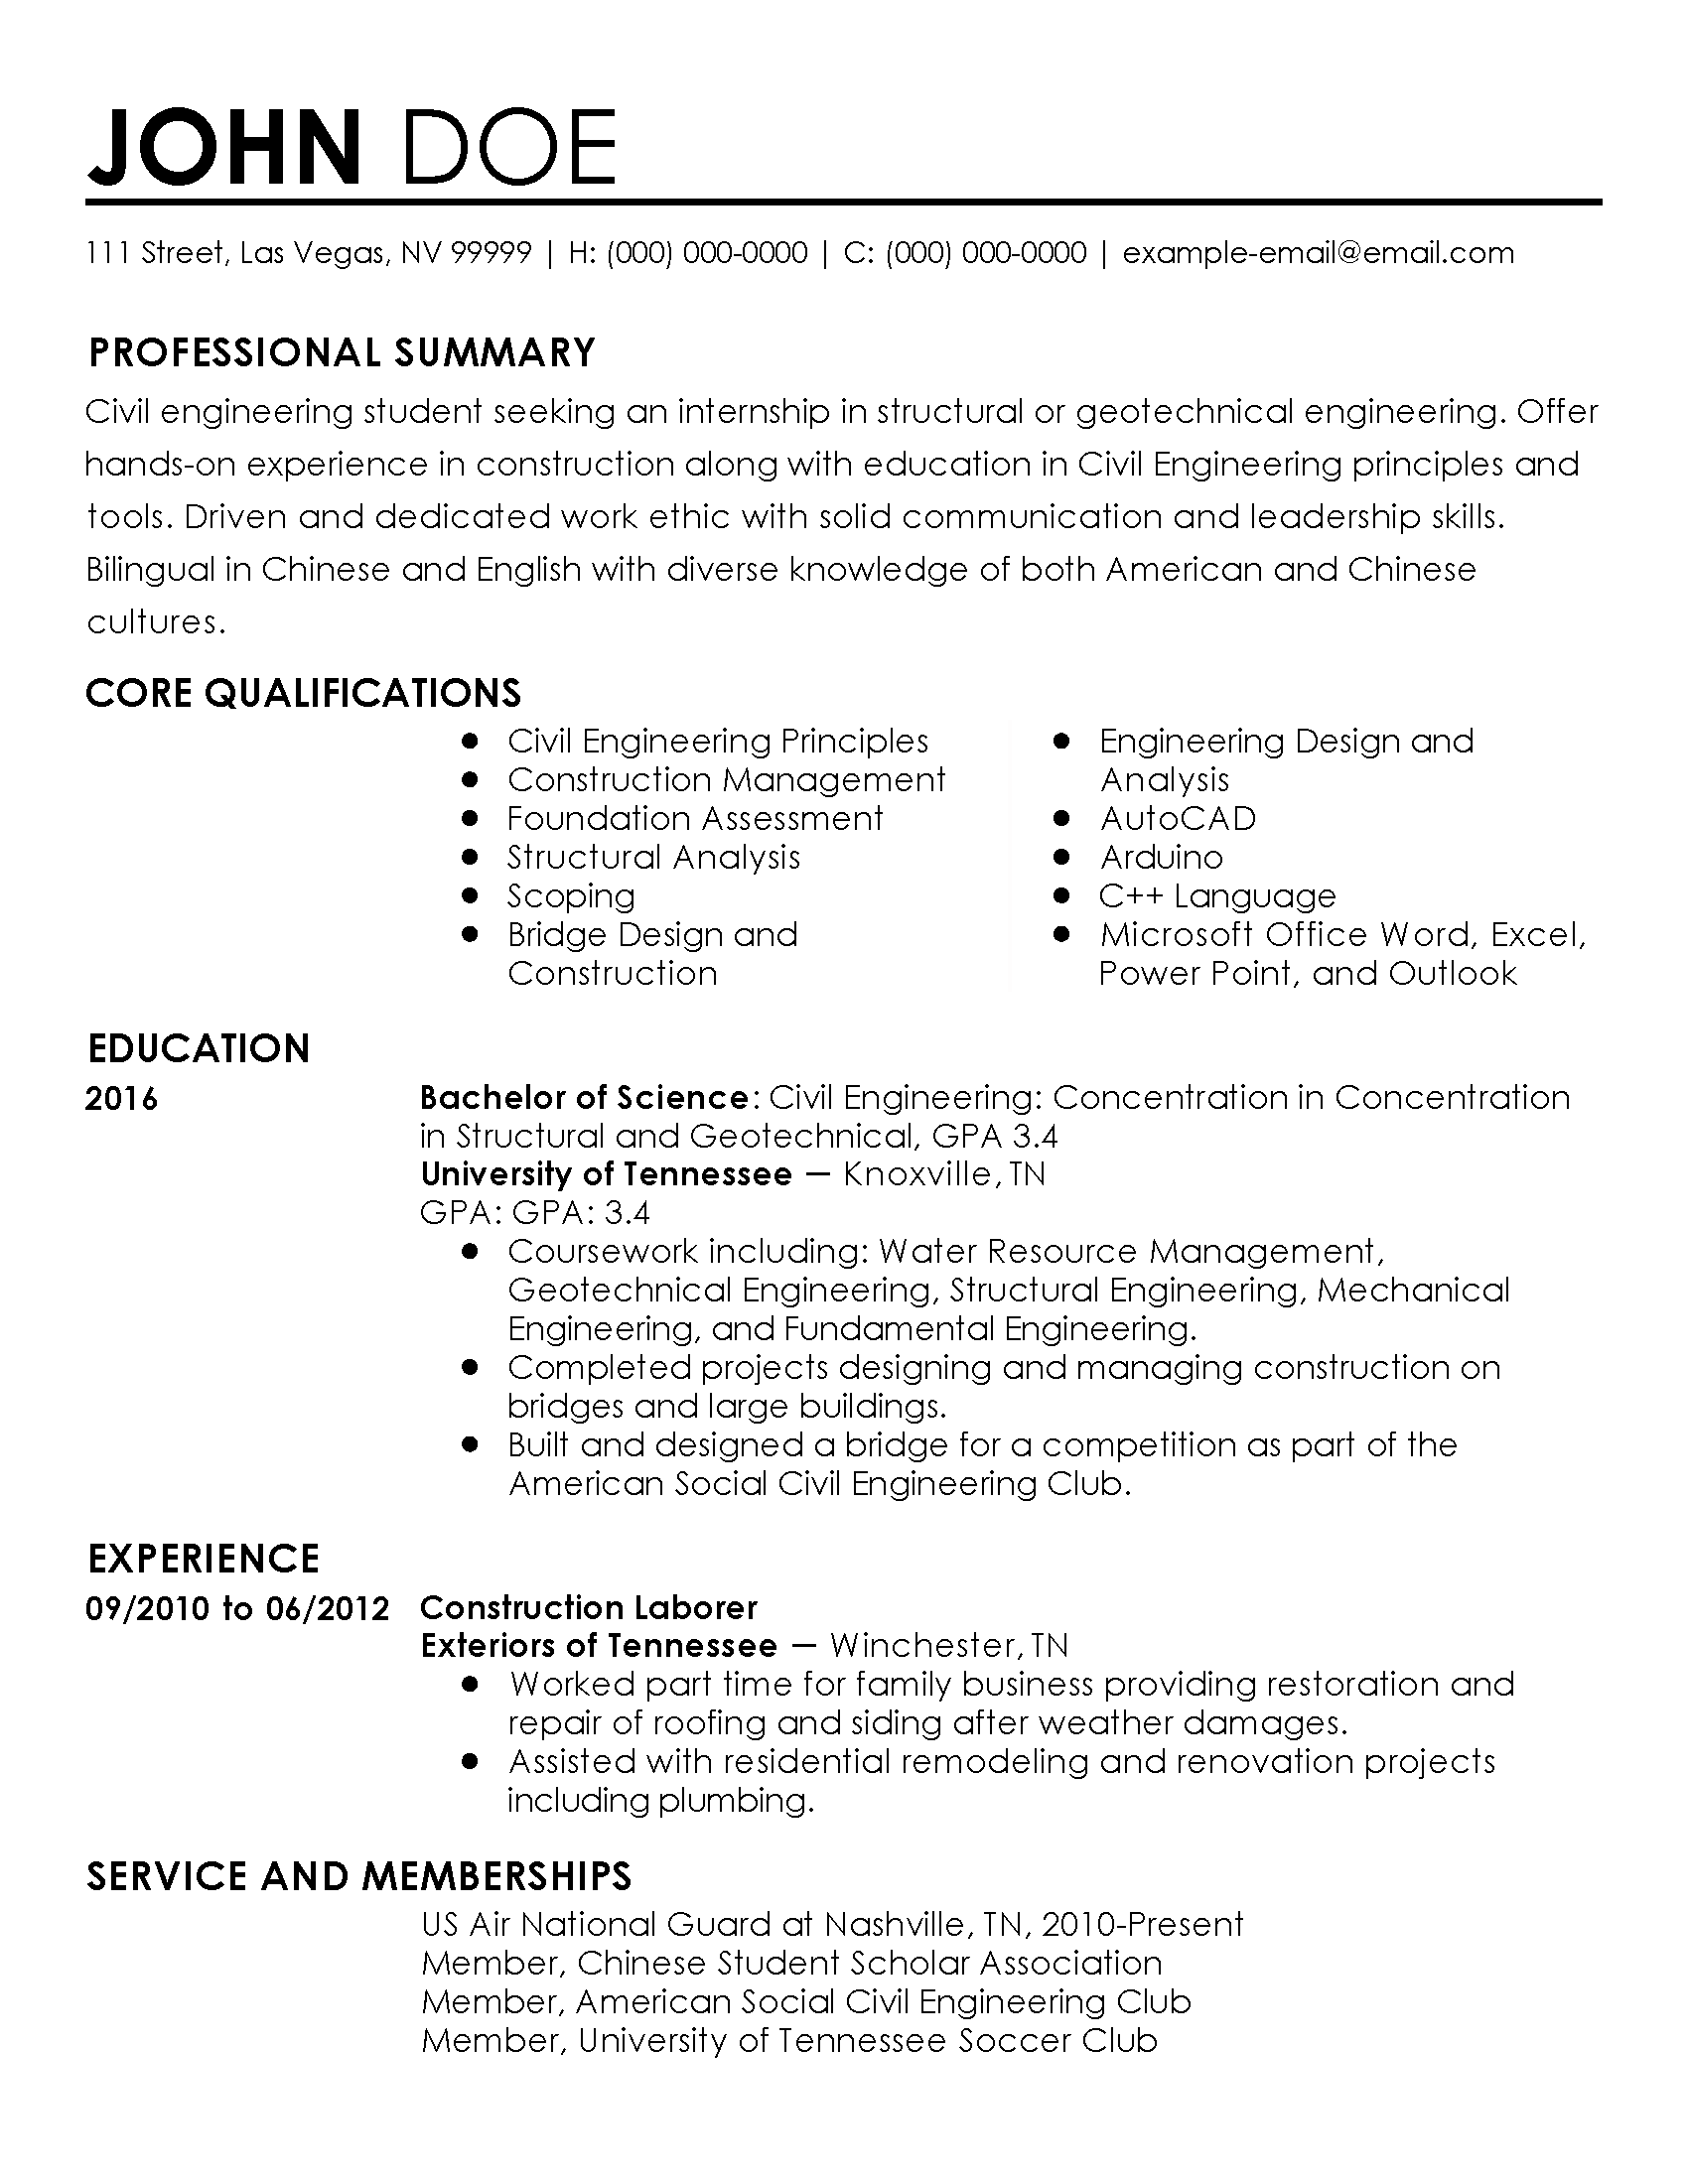 cv for engineering internship